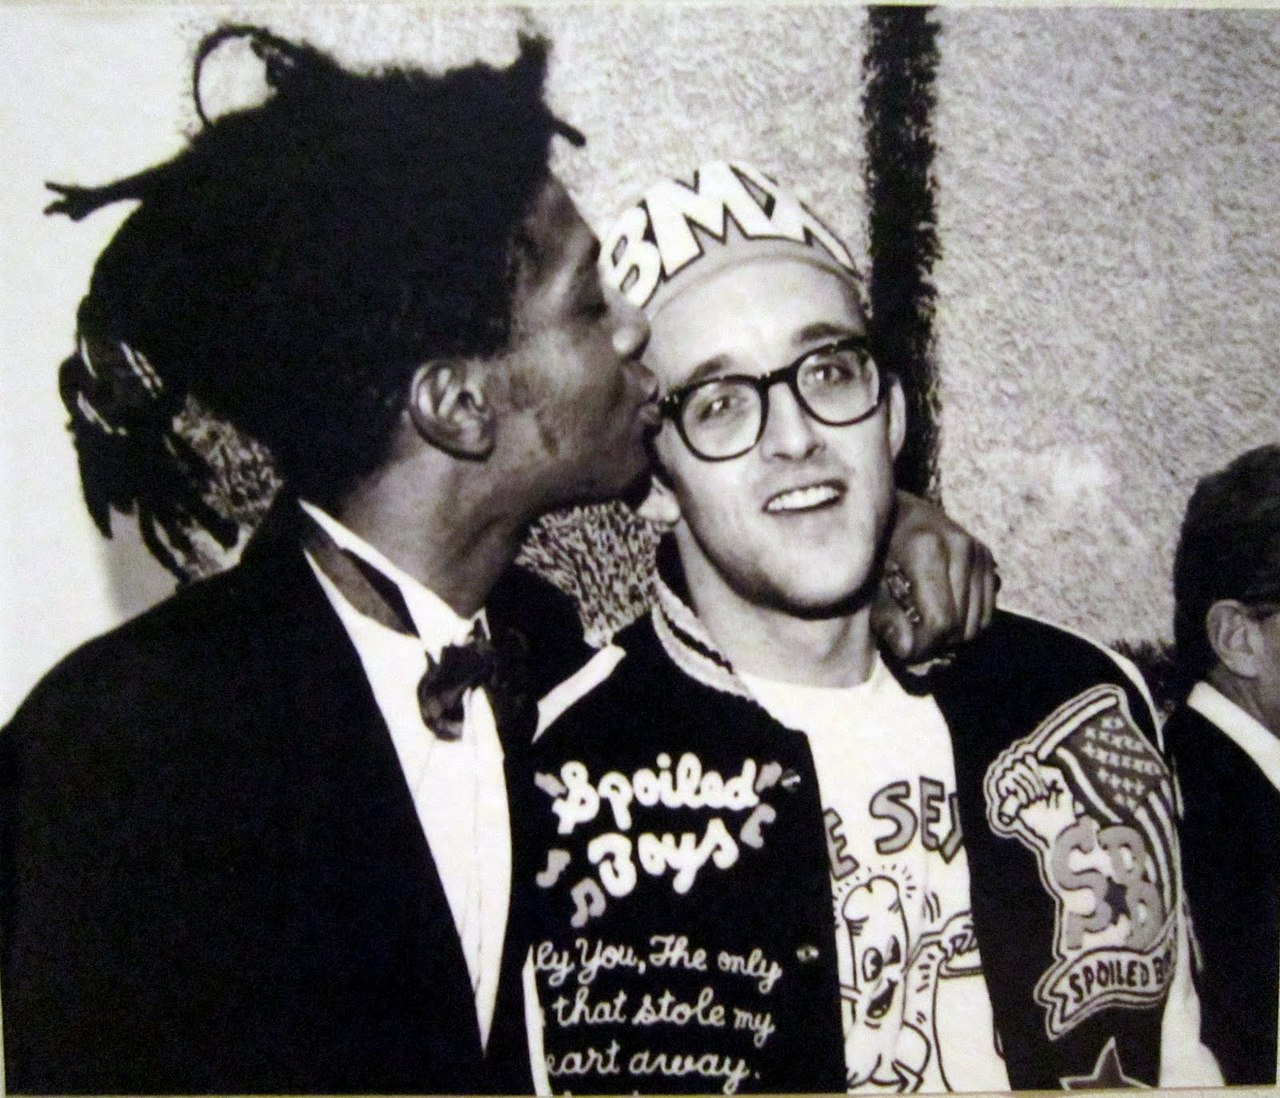 keith haring and my dad's younger self are the same person????? or keith haring/buddy holly??? or kieth haring and every white dude with glasses?